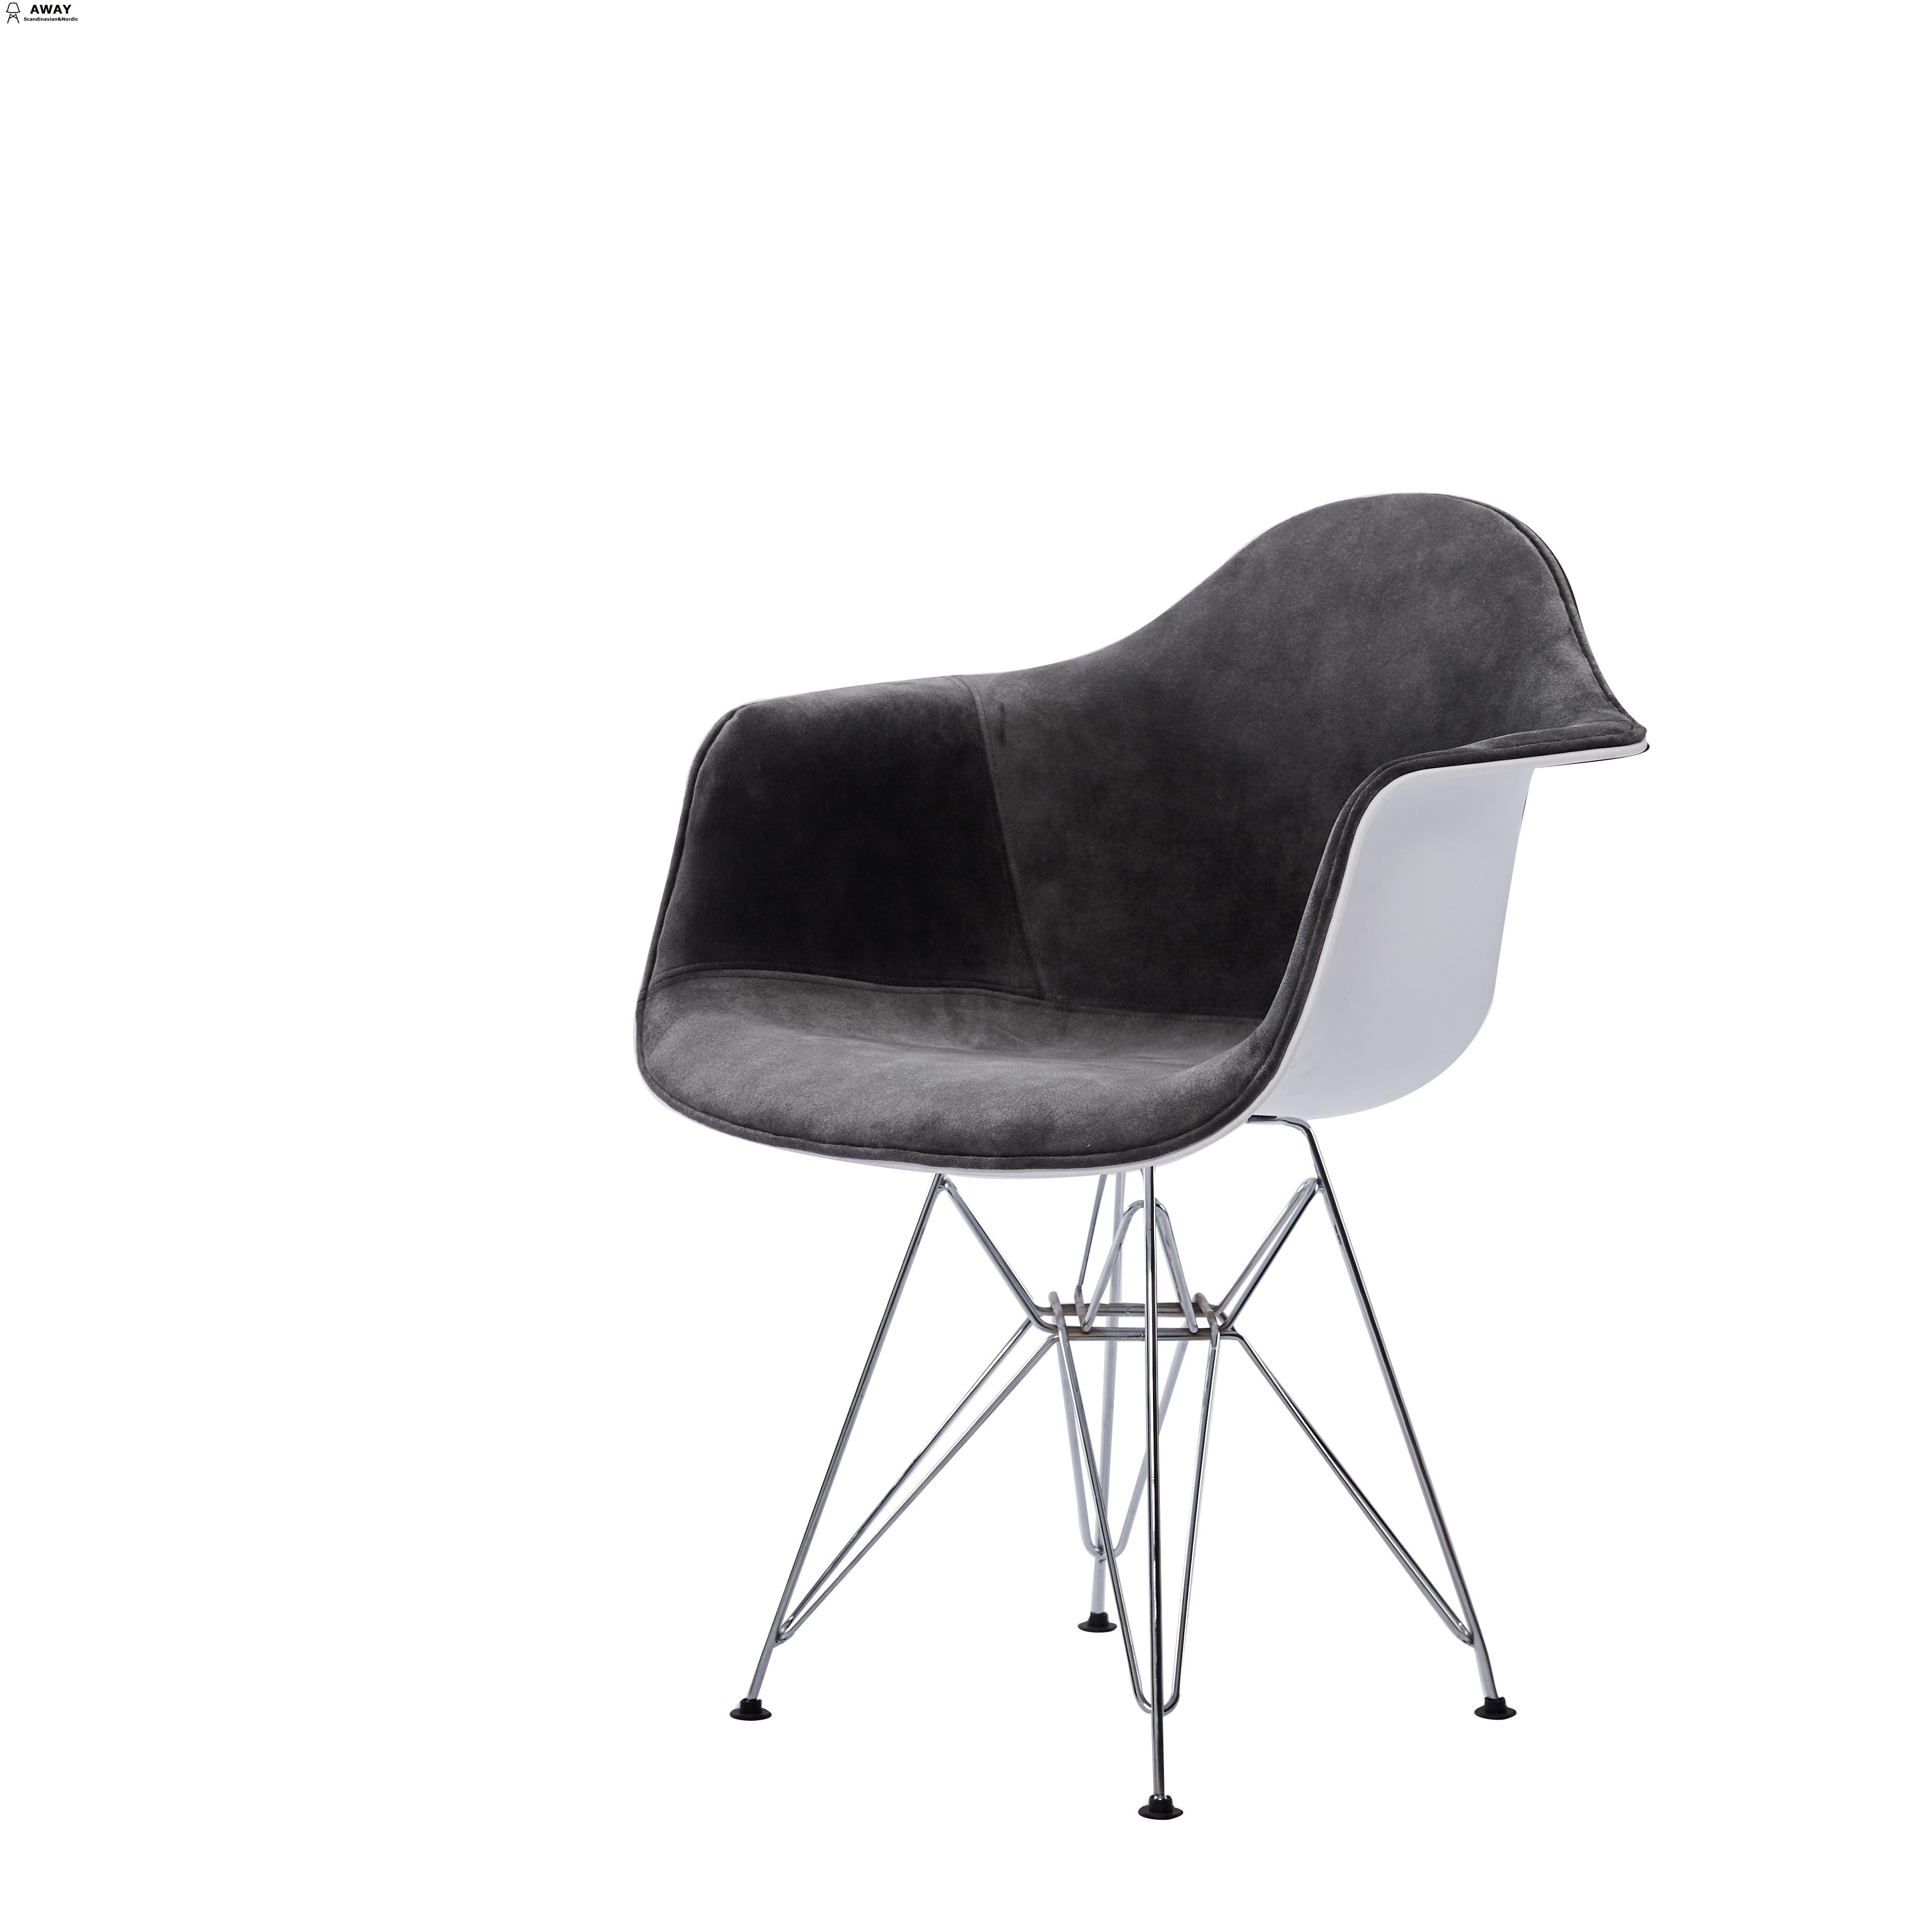 DAW style gray fabric upholstered dining chair chromed legs